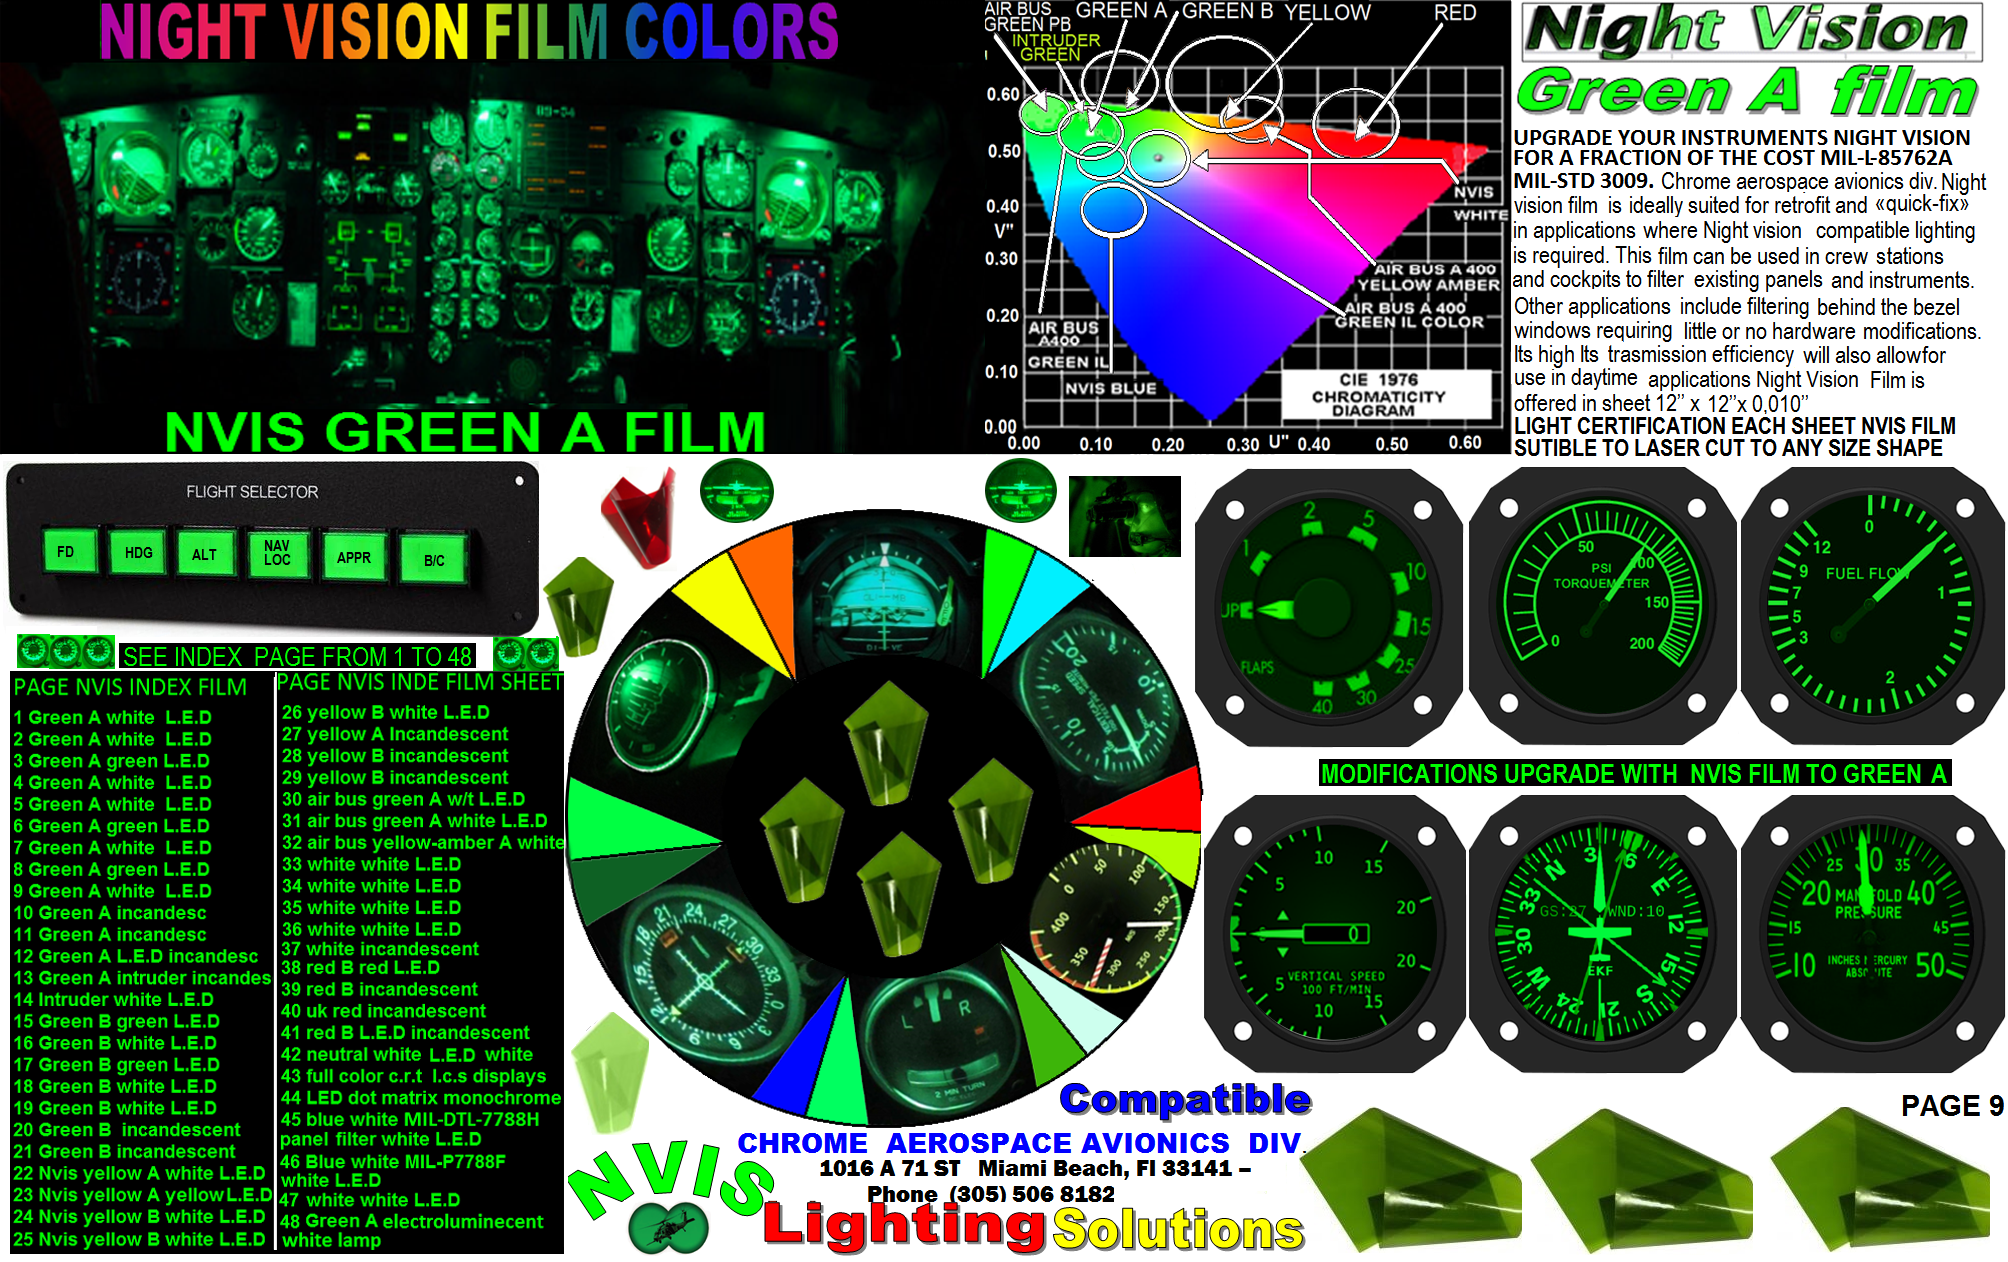 9 NVIS GREEN A FILM UPGRADE CONVERSION INSTRUMENTS 8-9-19